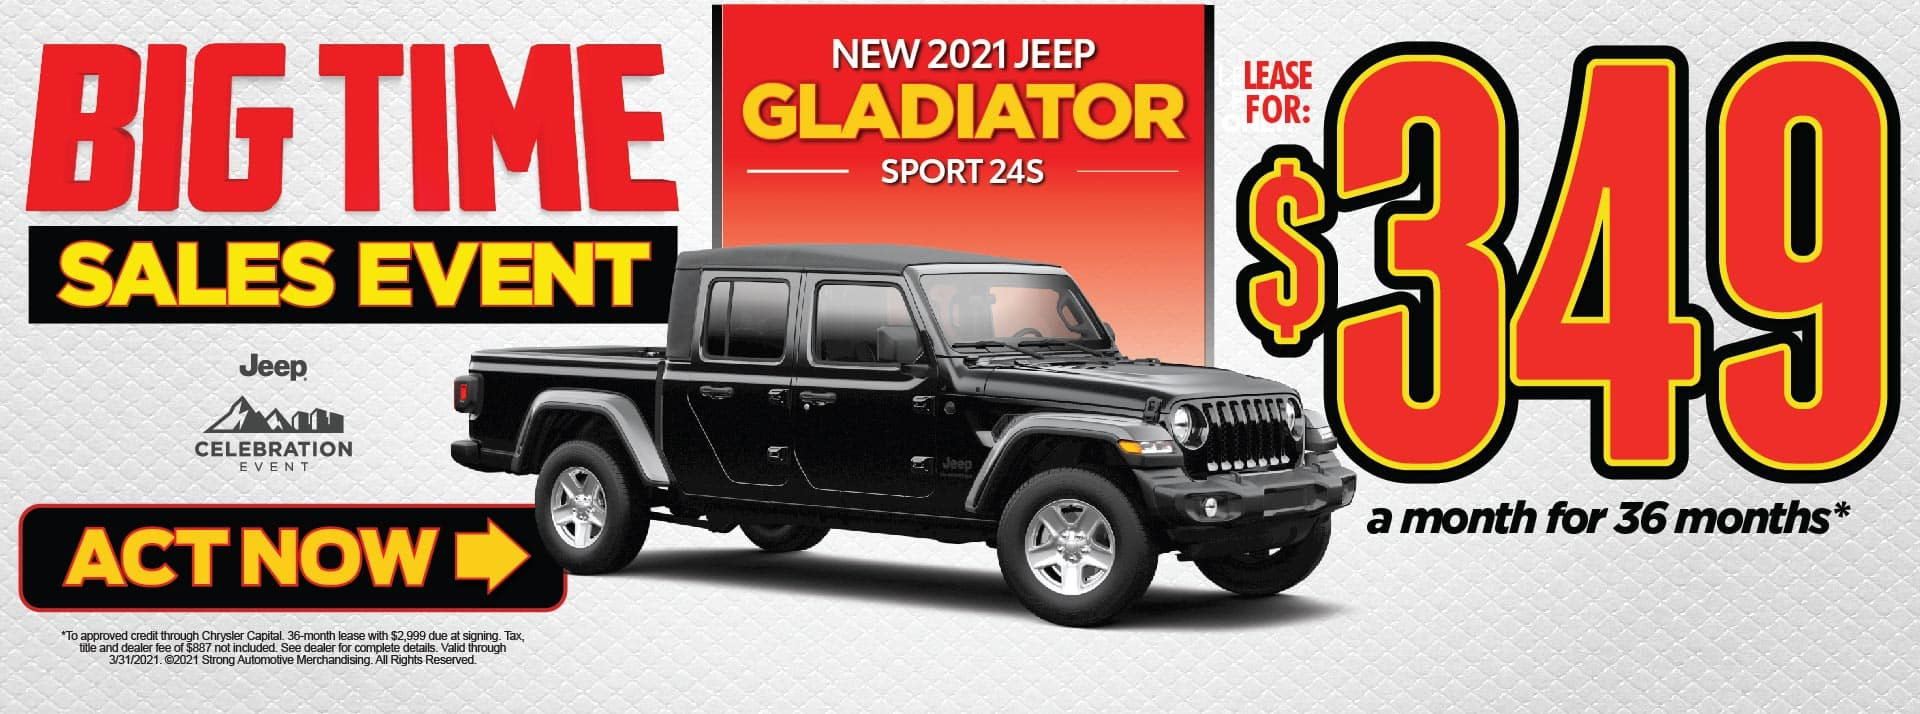 NEW 2021 JEEP GLADIATOR LEASE FOR $349/MO* ACT NOW